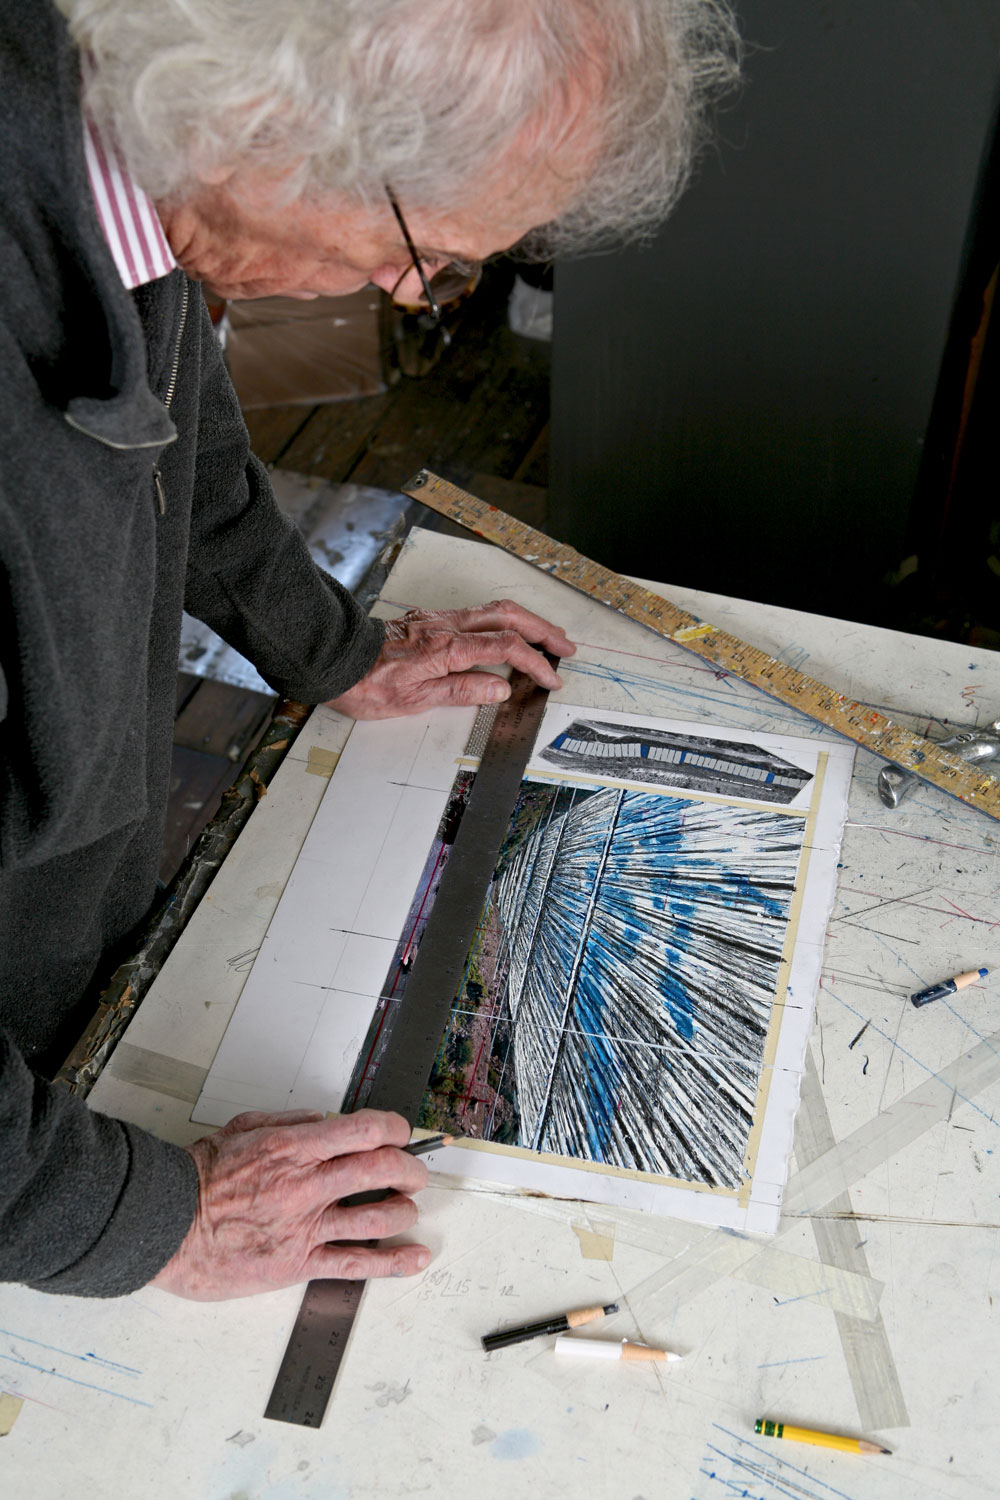 Christo in his studio working on a preparatory collage for Over The River 2011 Photo: Wolfgang Volz © 2011 Christo